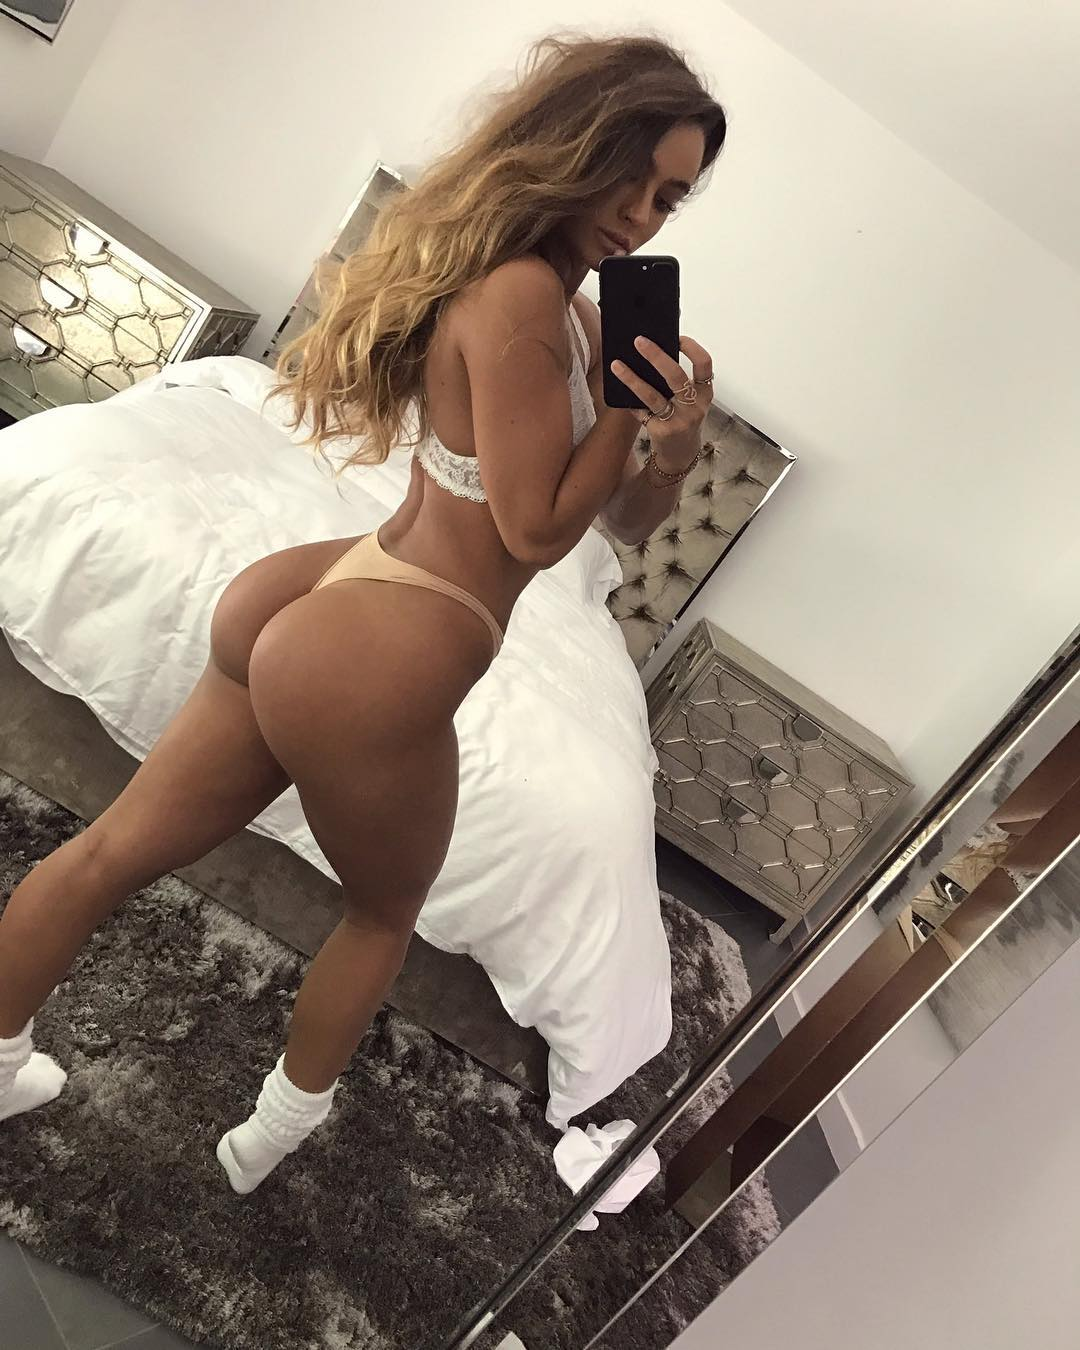 Sommer Ray YouTuber Sexy Hot Photo Leaks